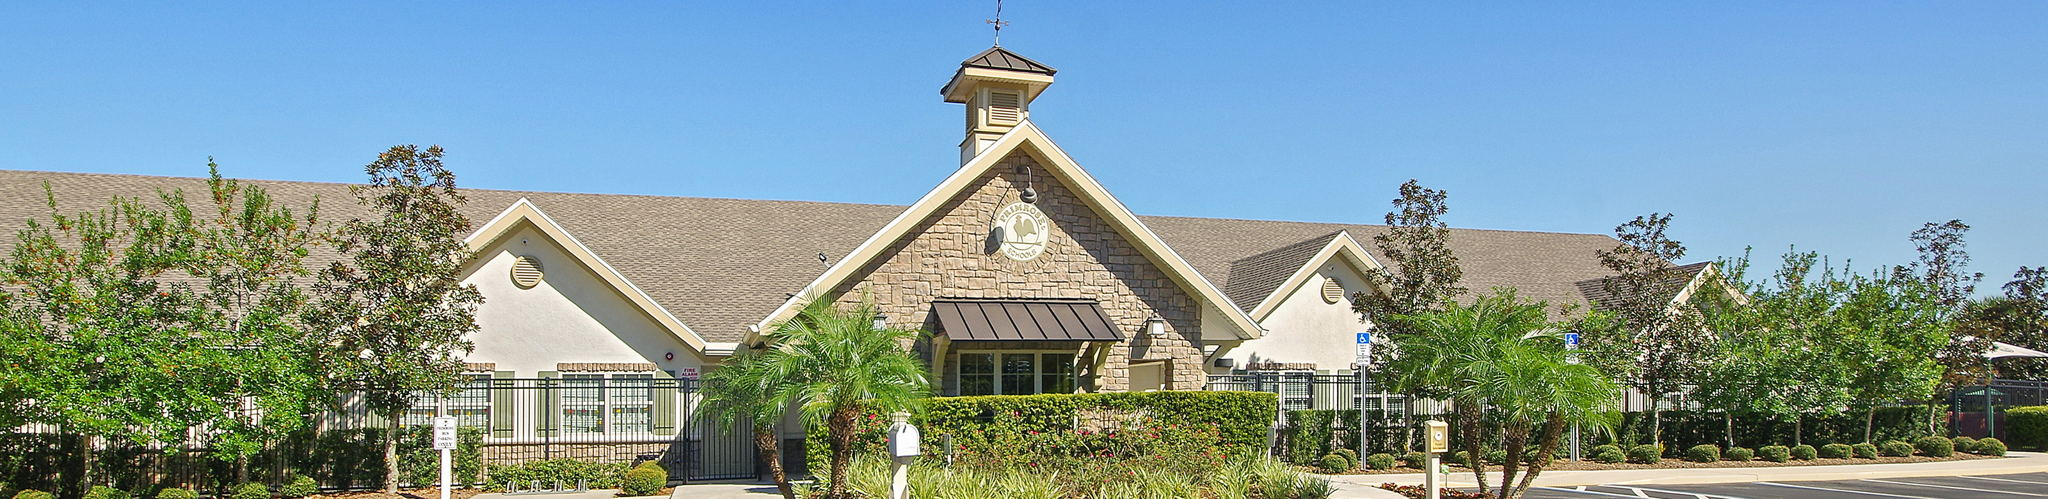 Exterior of a Primrose School of Waterford Lakes